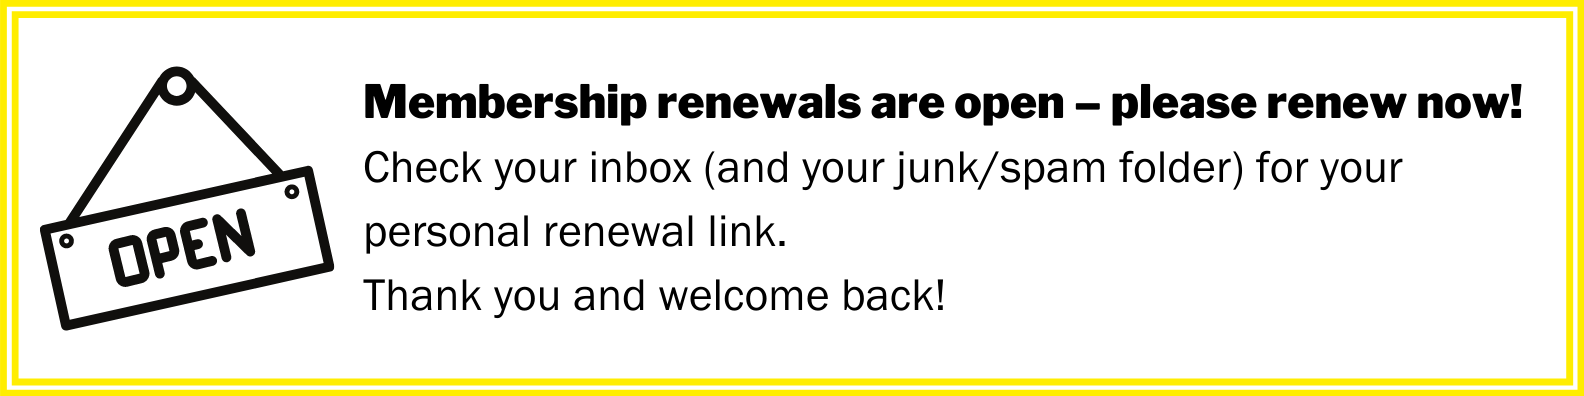 Membership renewals are open – please renew now! Check your inbox (and your junk/spam folder) for your personal renewal link. Thank you and welcome back!